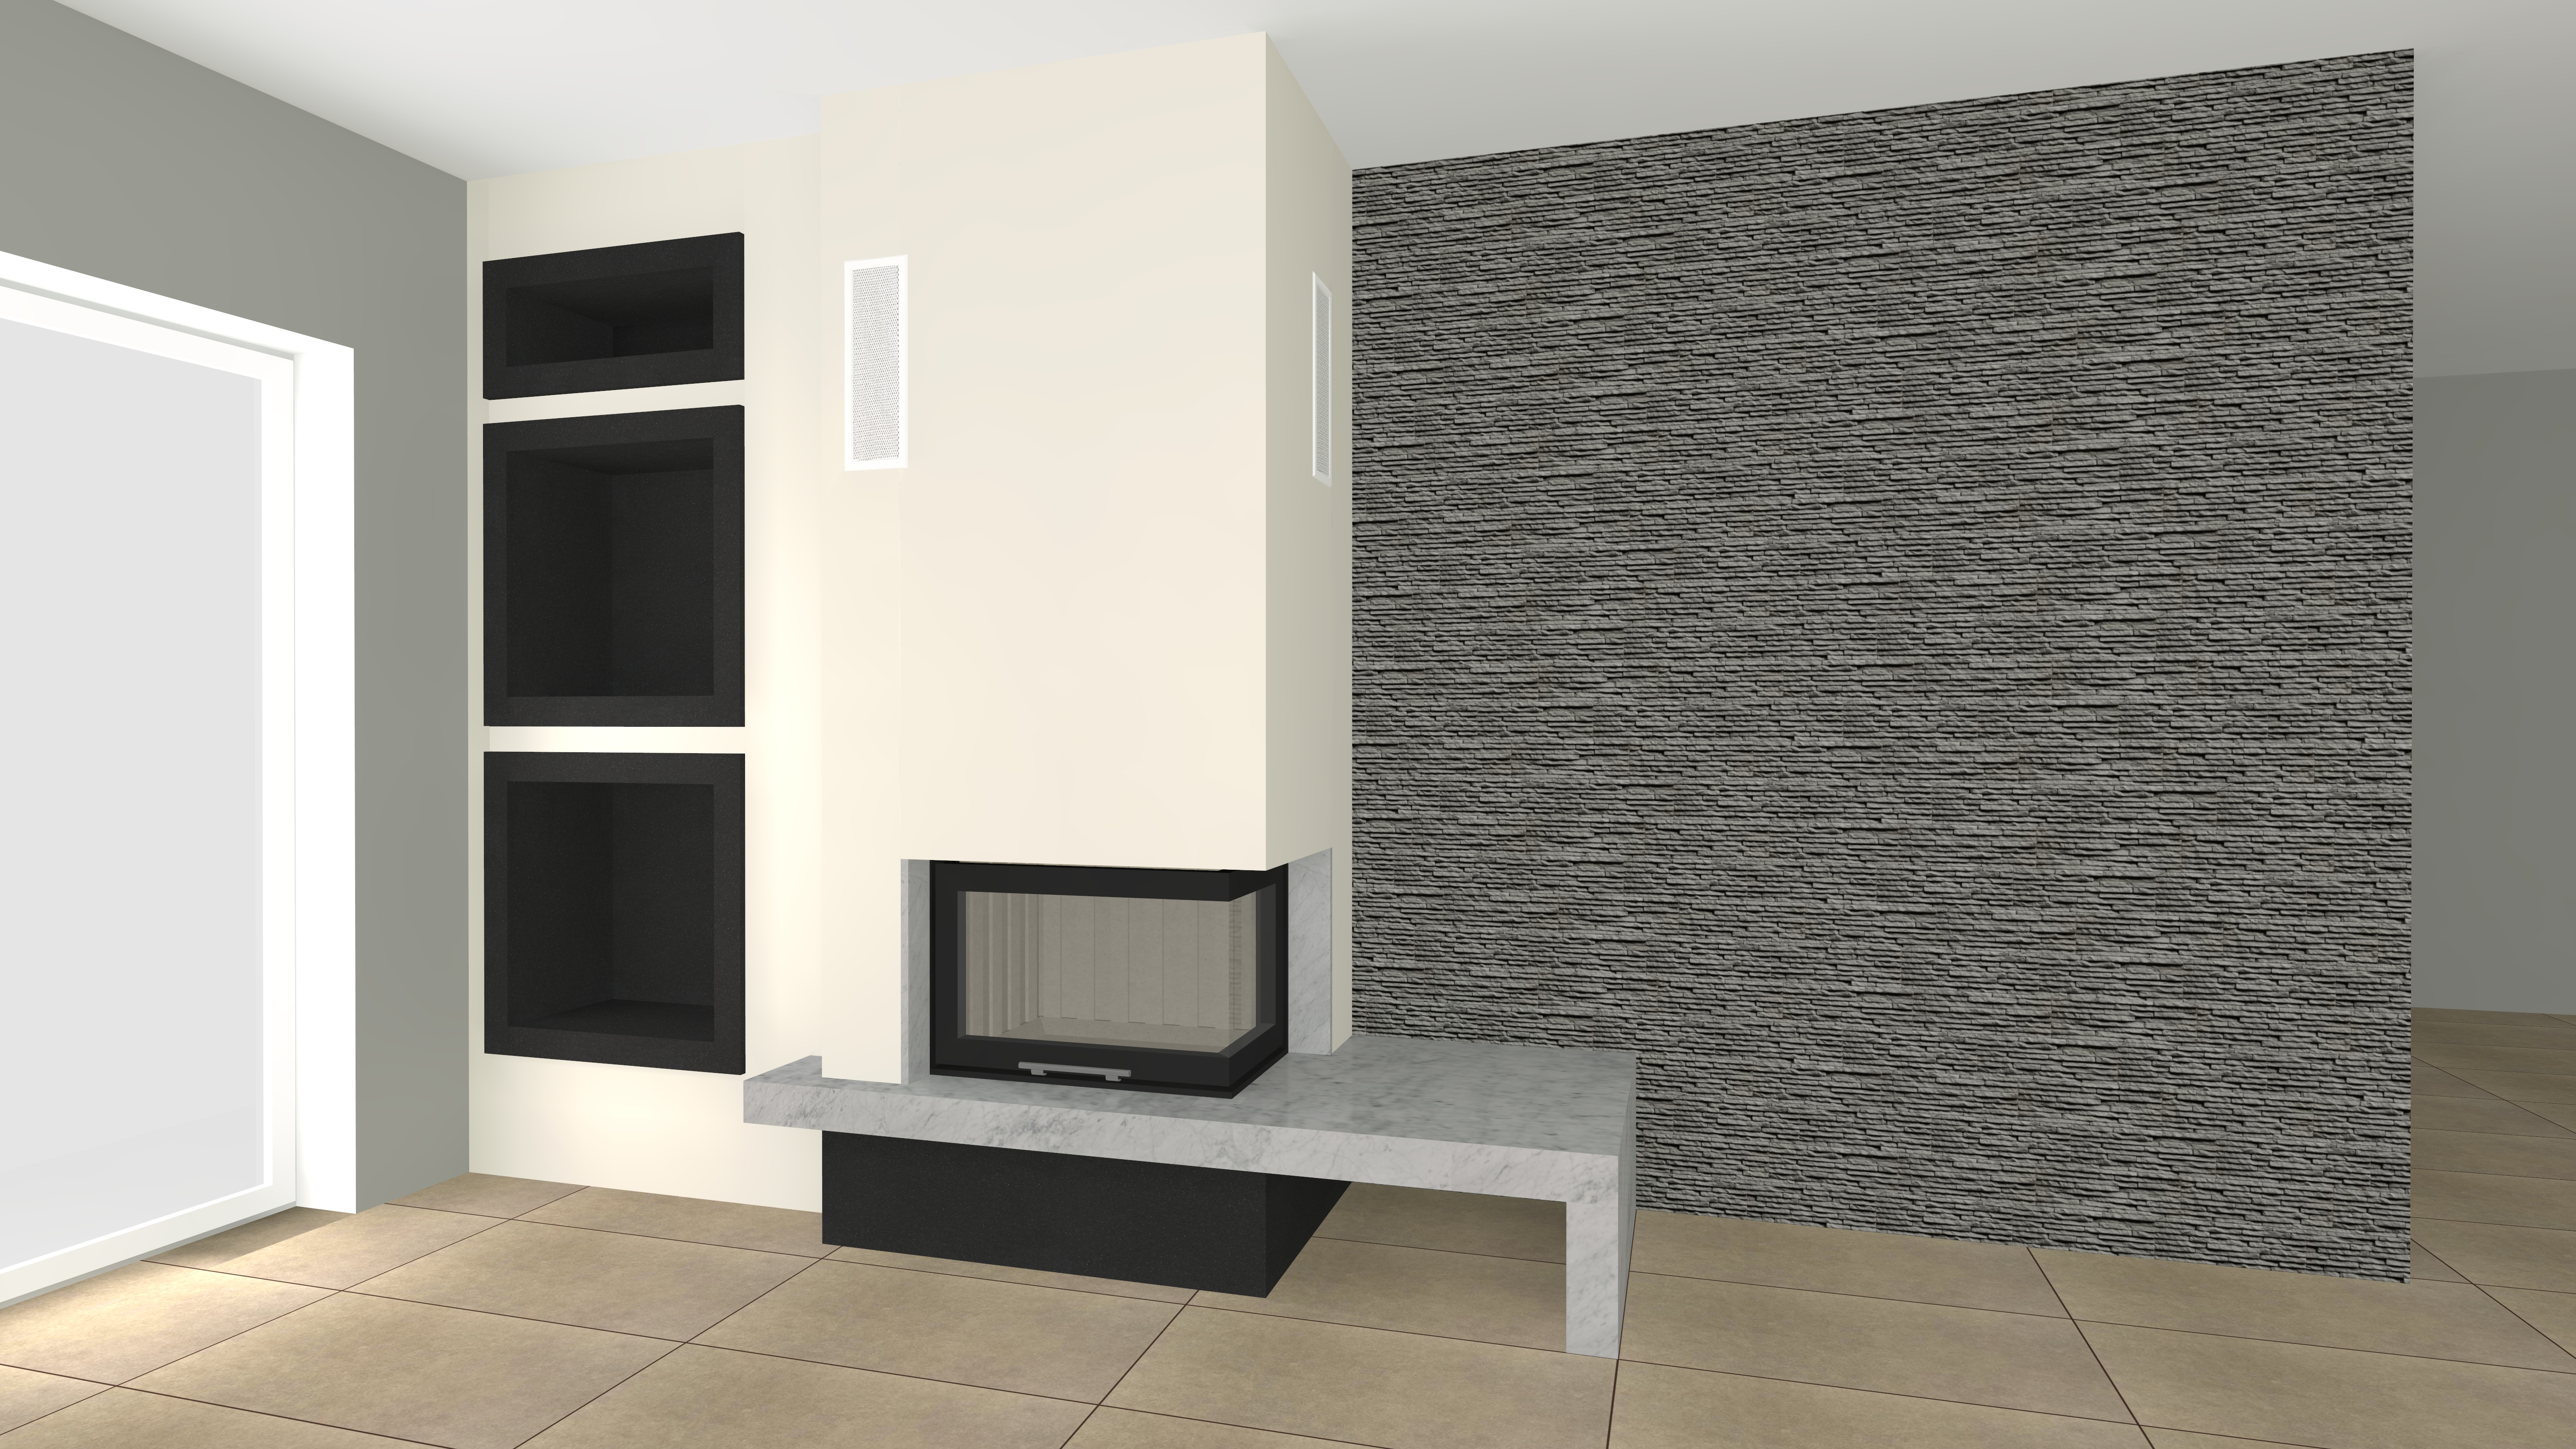 eckkamin modern a 17 3 mit spartherm mit montage www. Black Bedroom Furniture Sets. Home Design Ideas